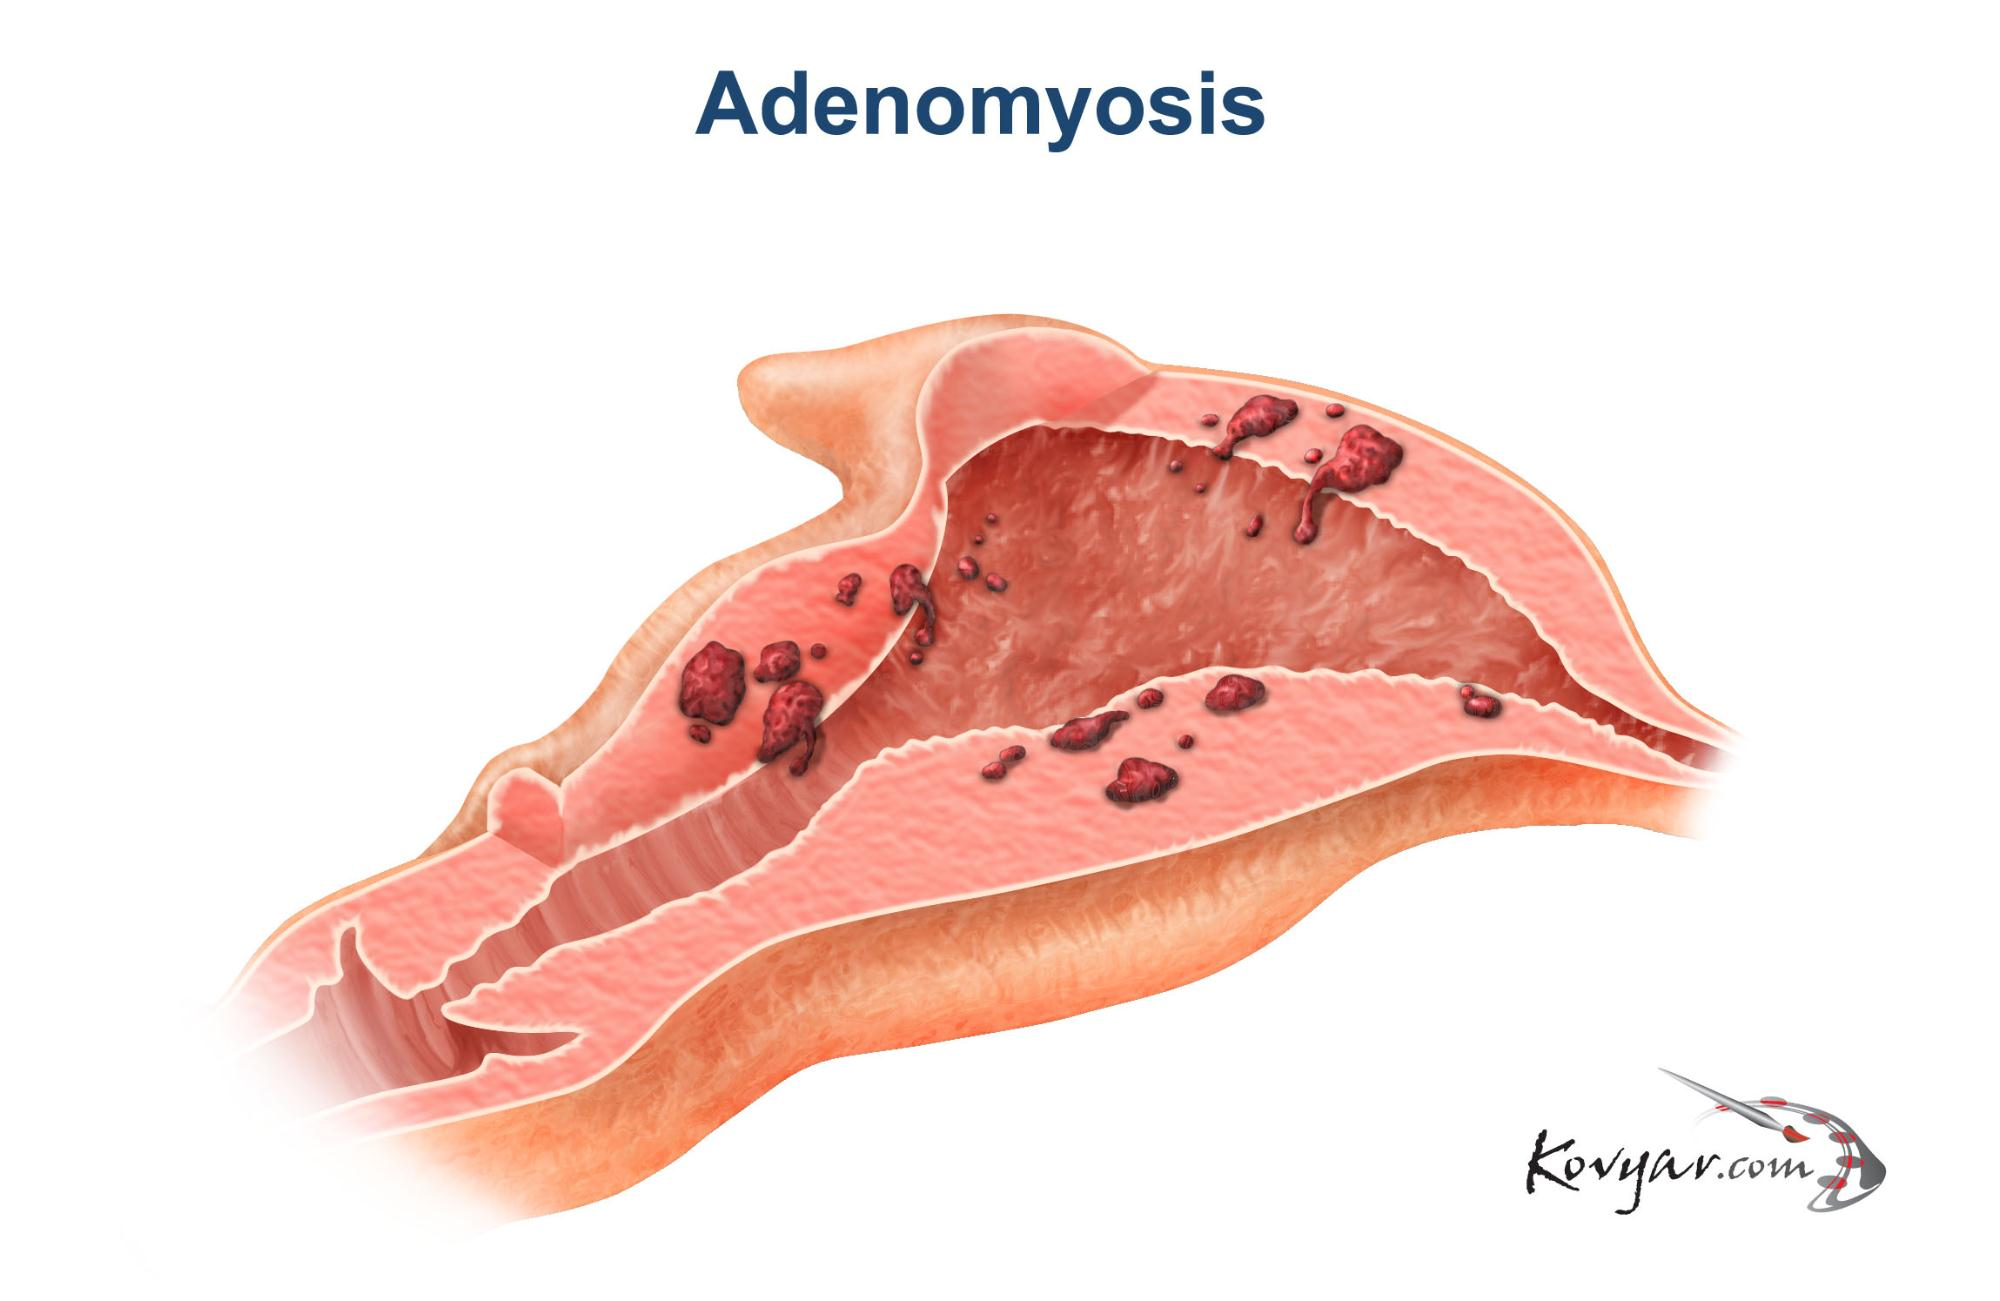 Diagram of a uterus with Adenomyosis